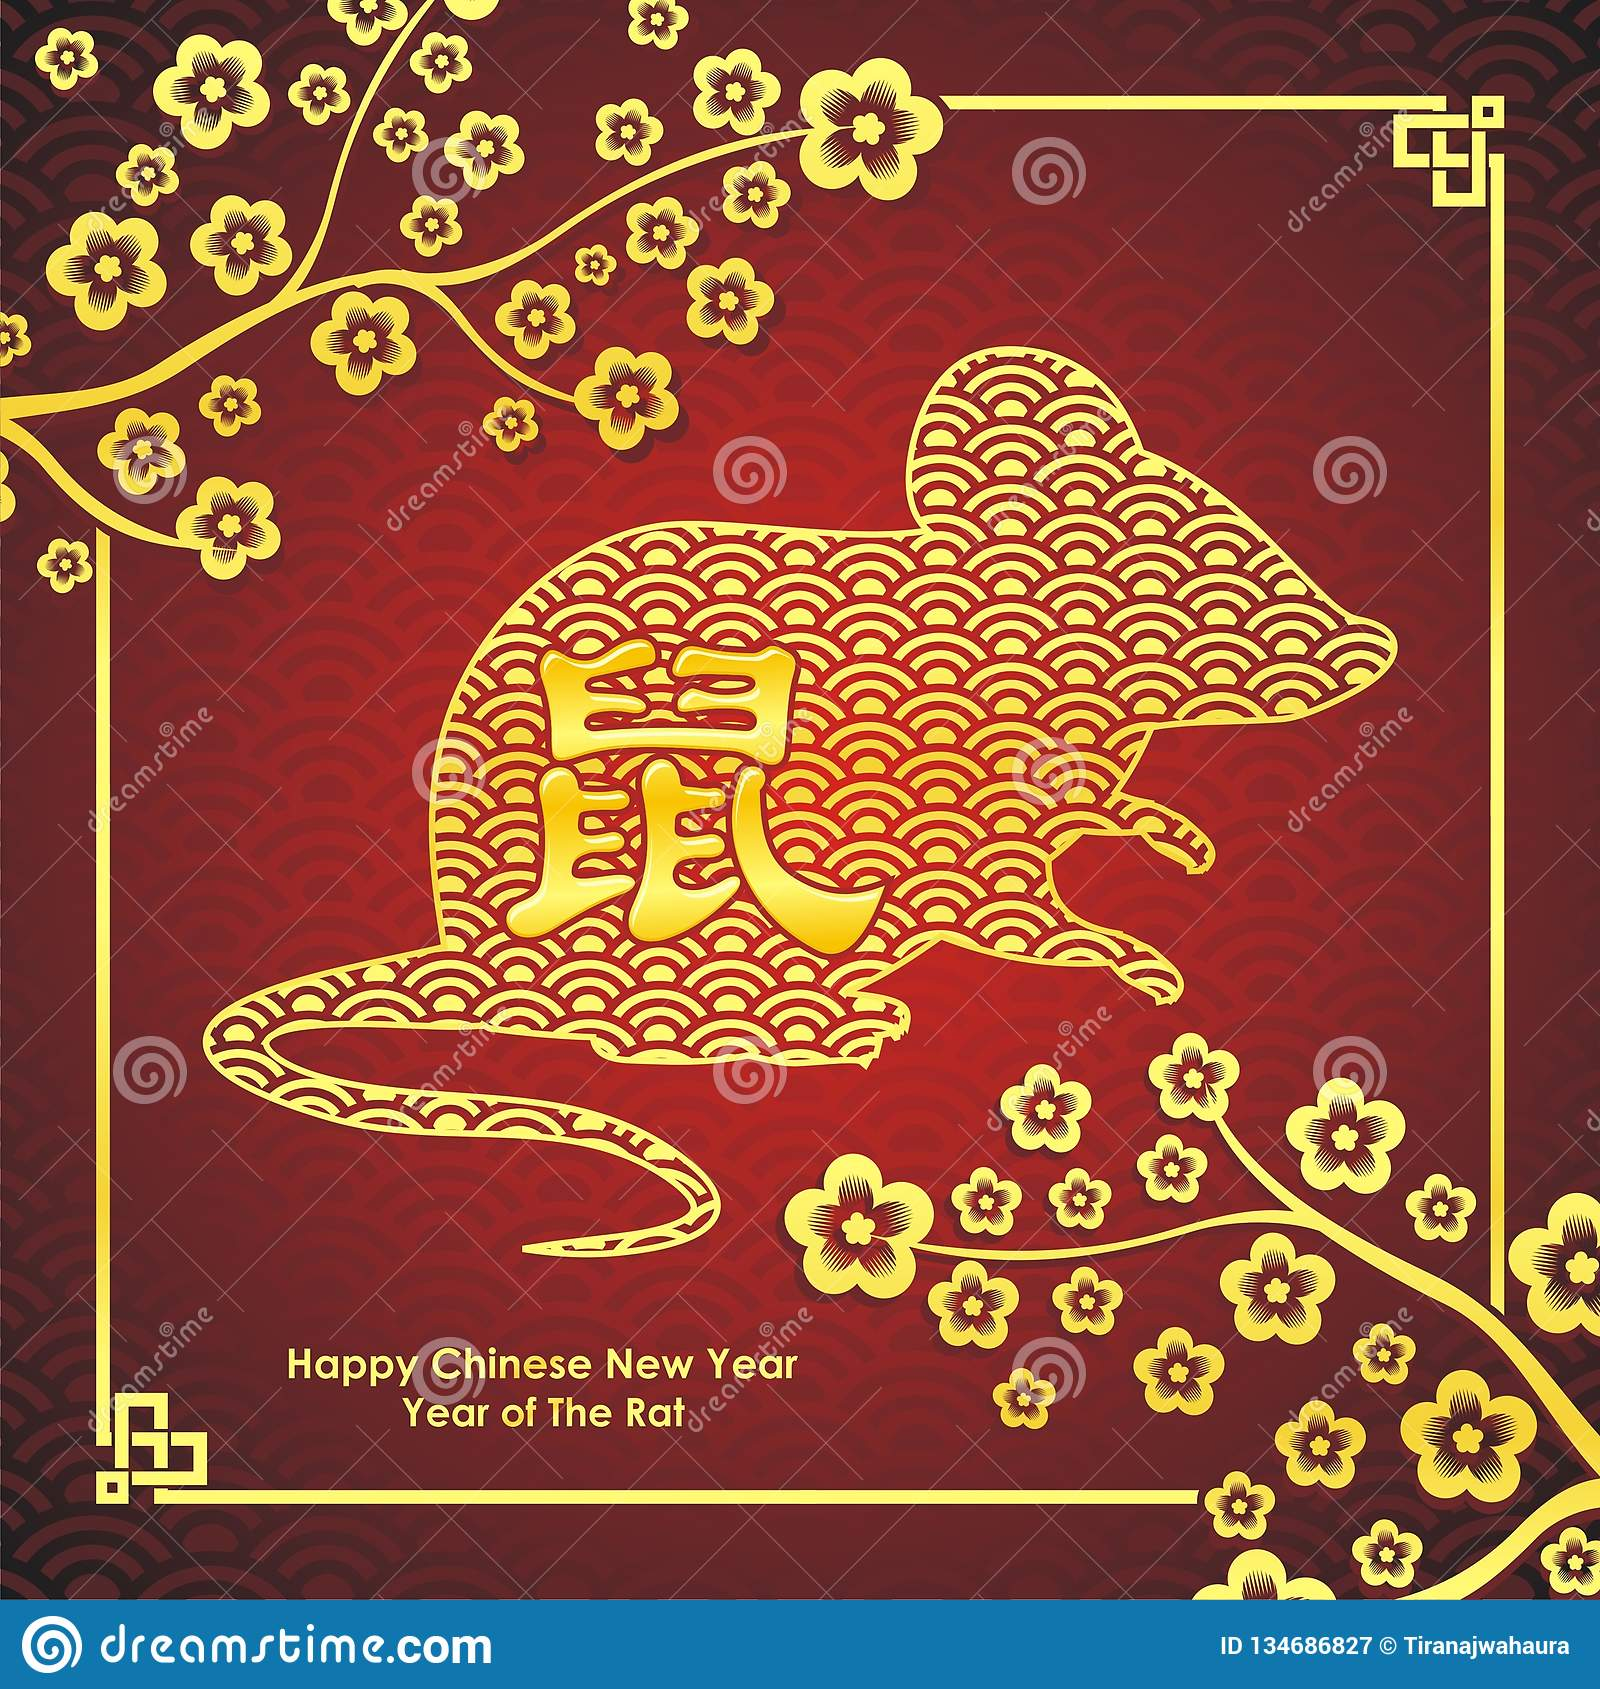 Year Of The Rat Chinese New Year Vector Design Stock